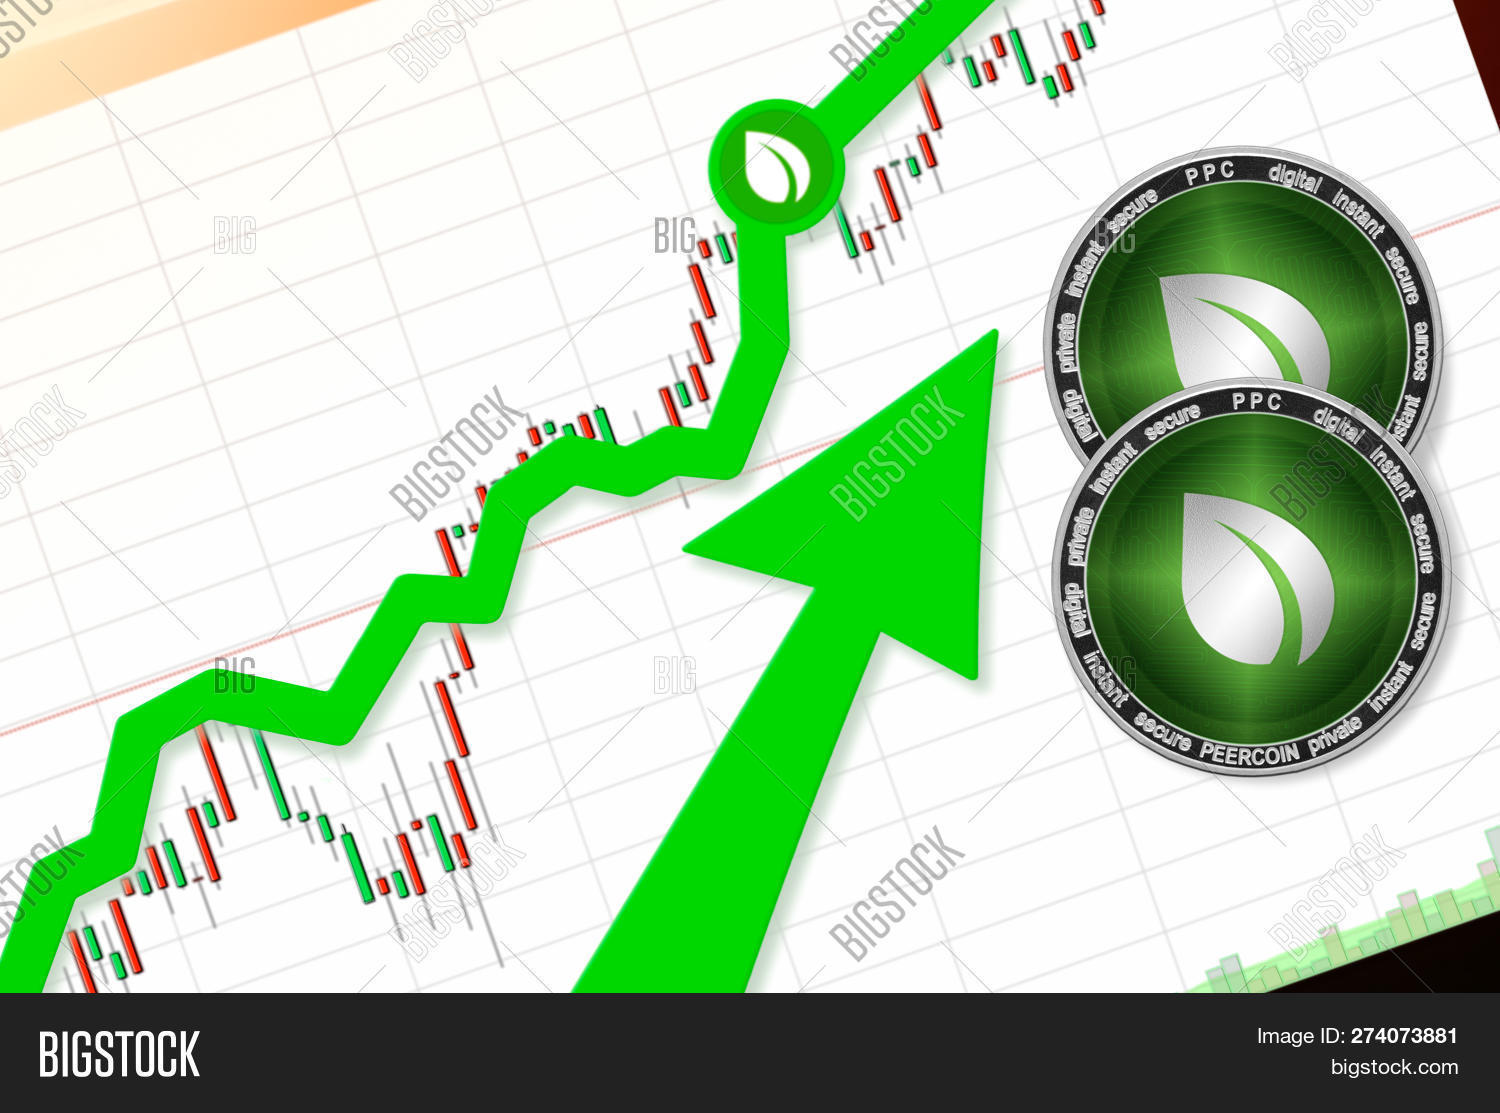 cryptocurrency exchange peercoin